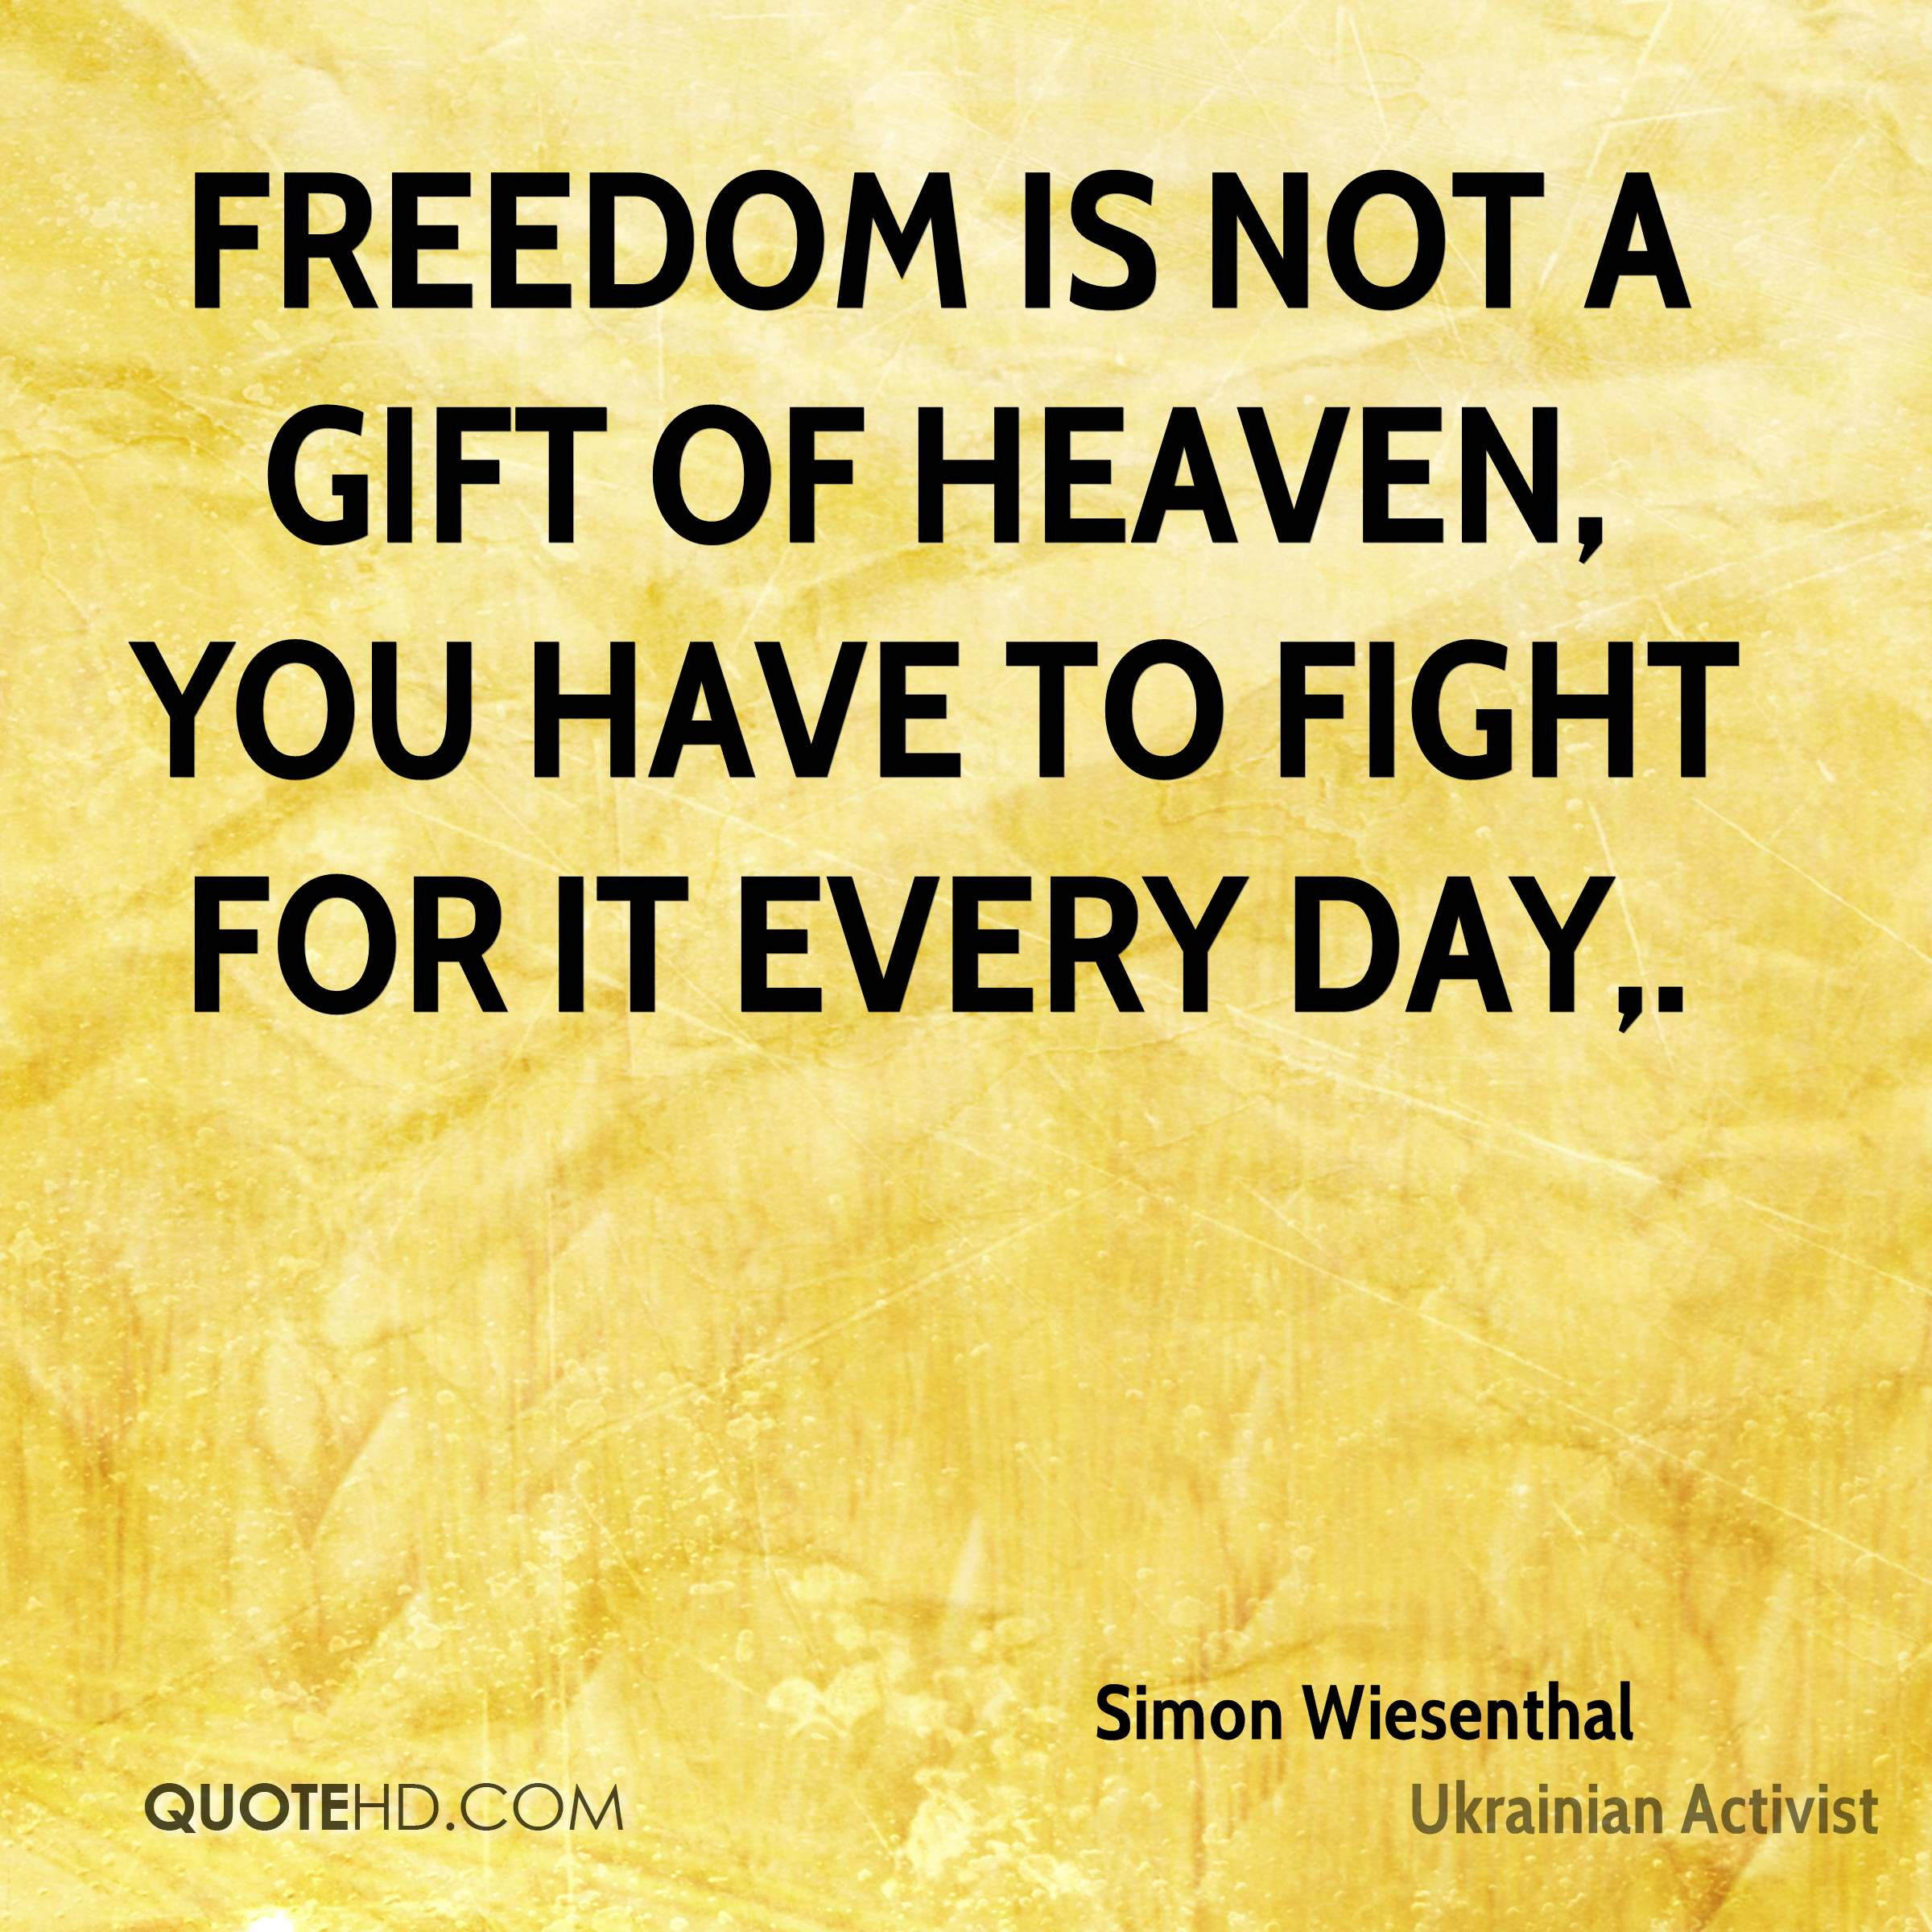 Freedom is not a gift of heaven, you have to fight for it every day.